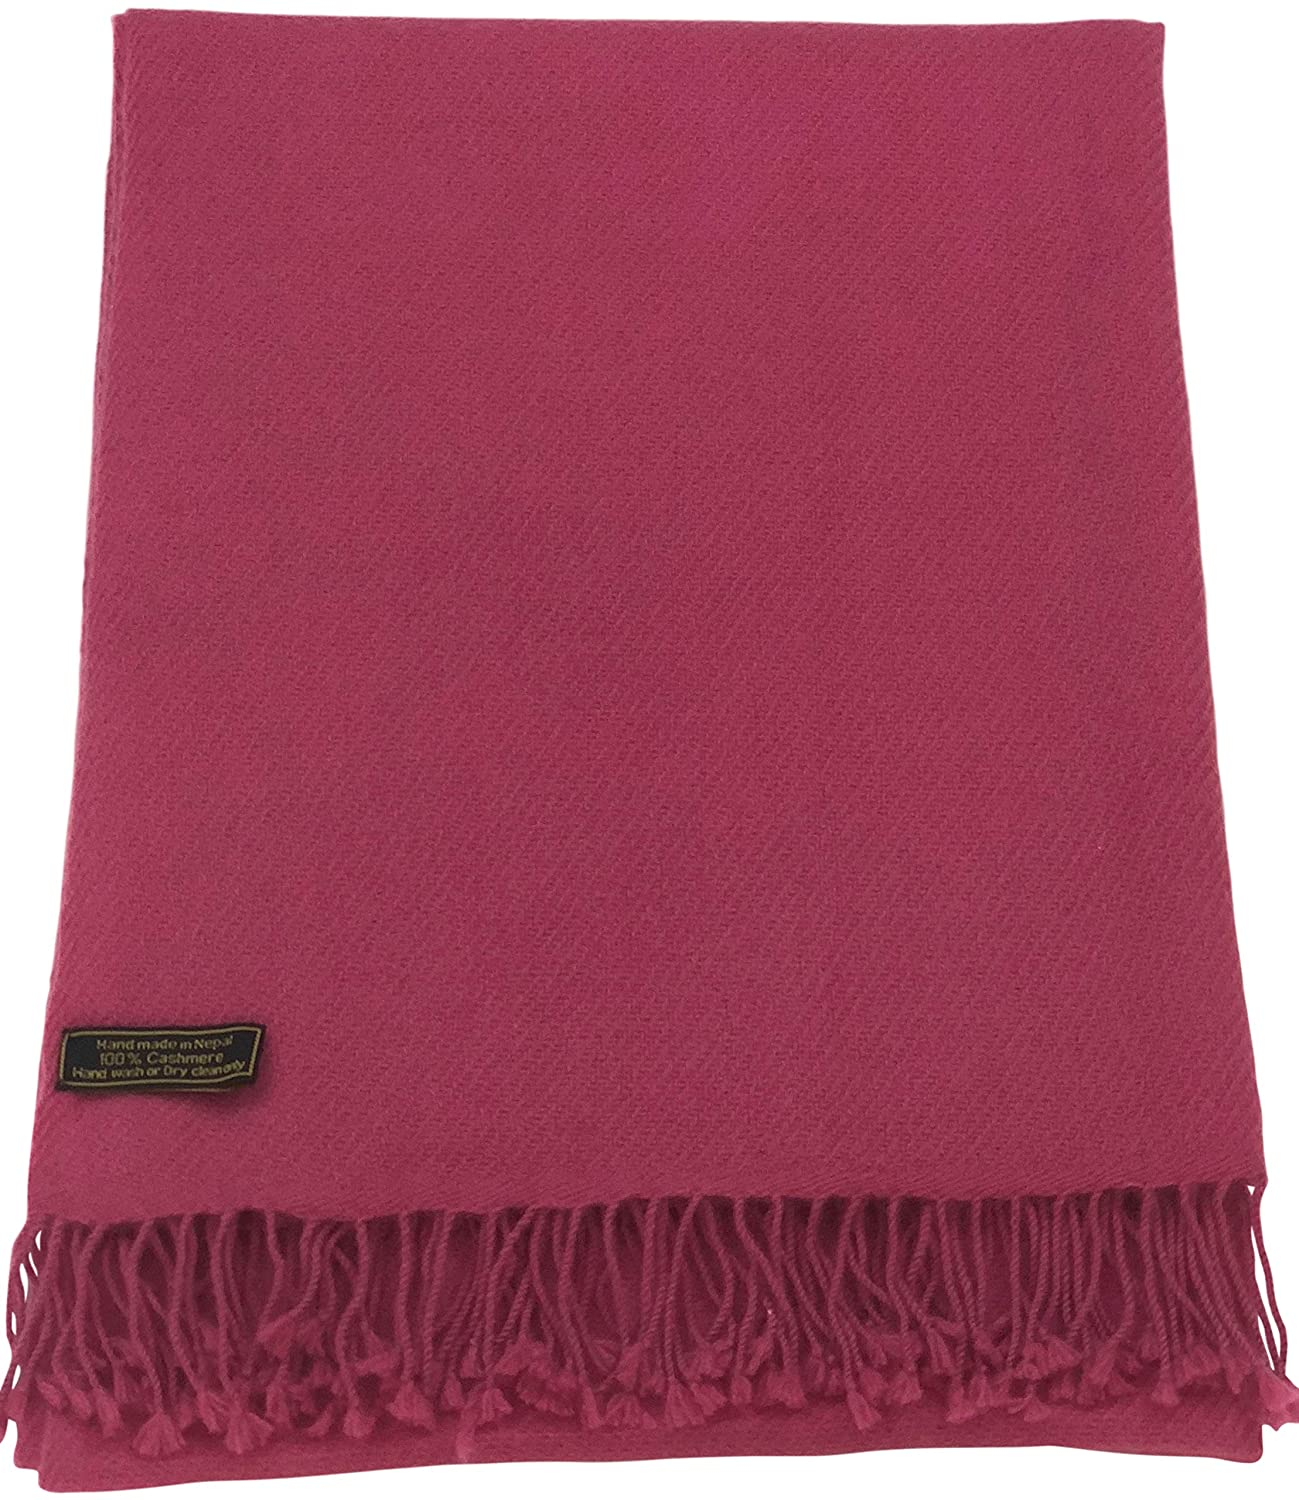 Hot Pink Beige High Grade 100% Cashmere Shawl Scarf Wrap Hand Made in Nepal NEW